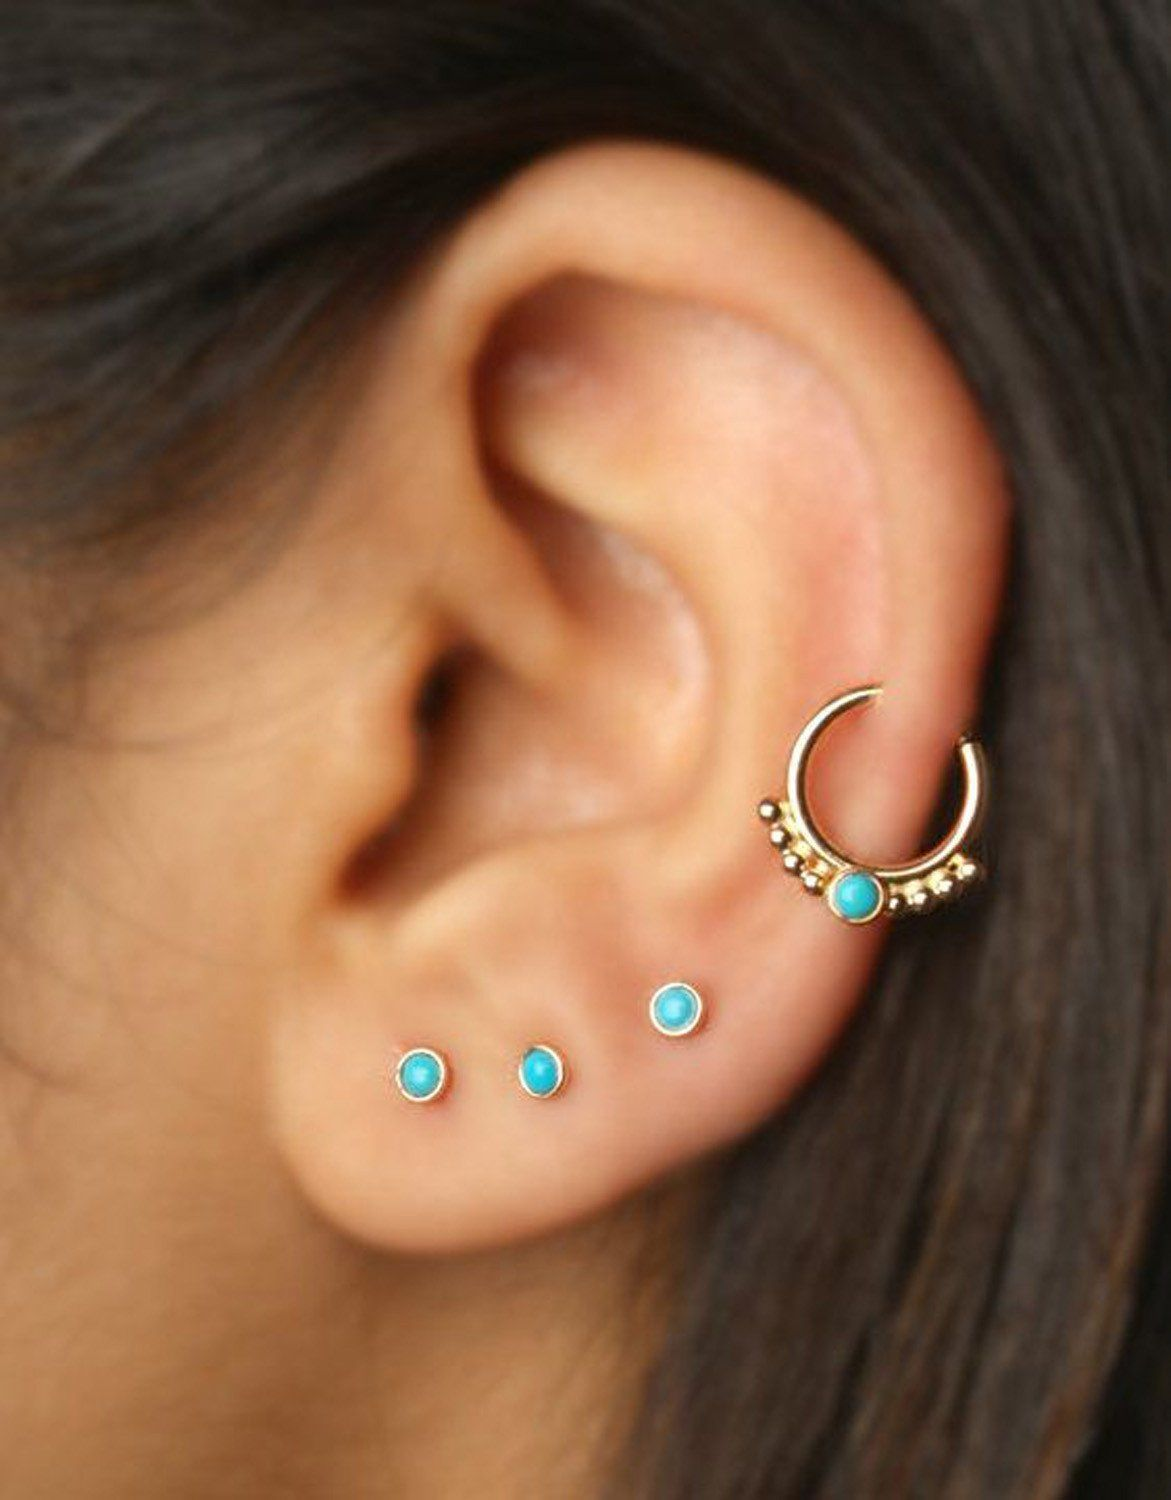 Helix or Conch  Earring Helix Piercing Helix Earring Helix Piercing  Piercing  Bar Cartilage Piercing  with howlite turquoise